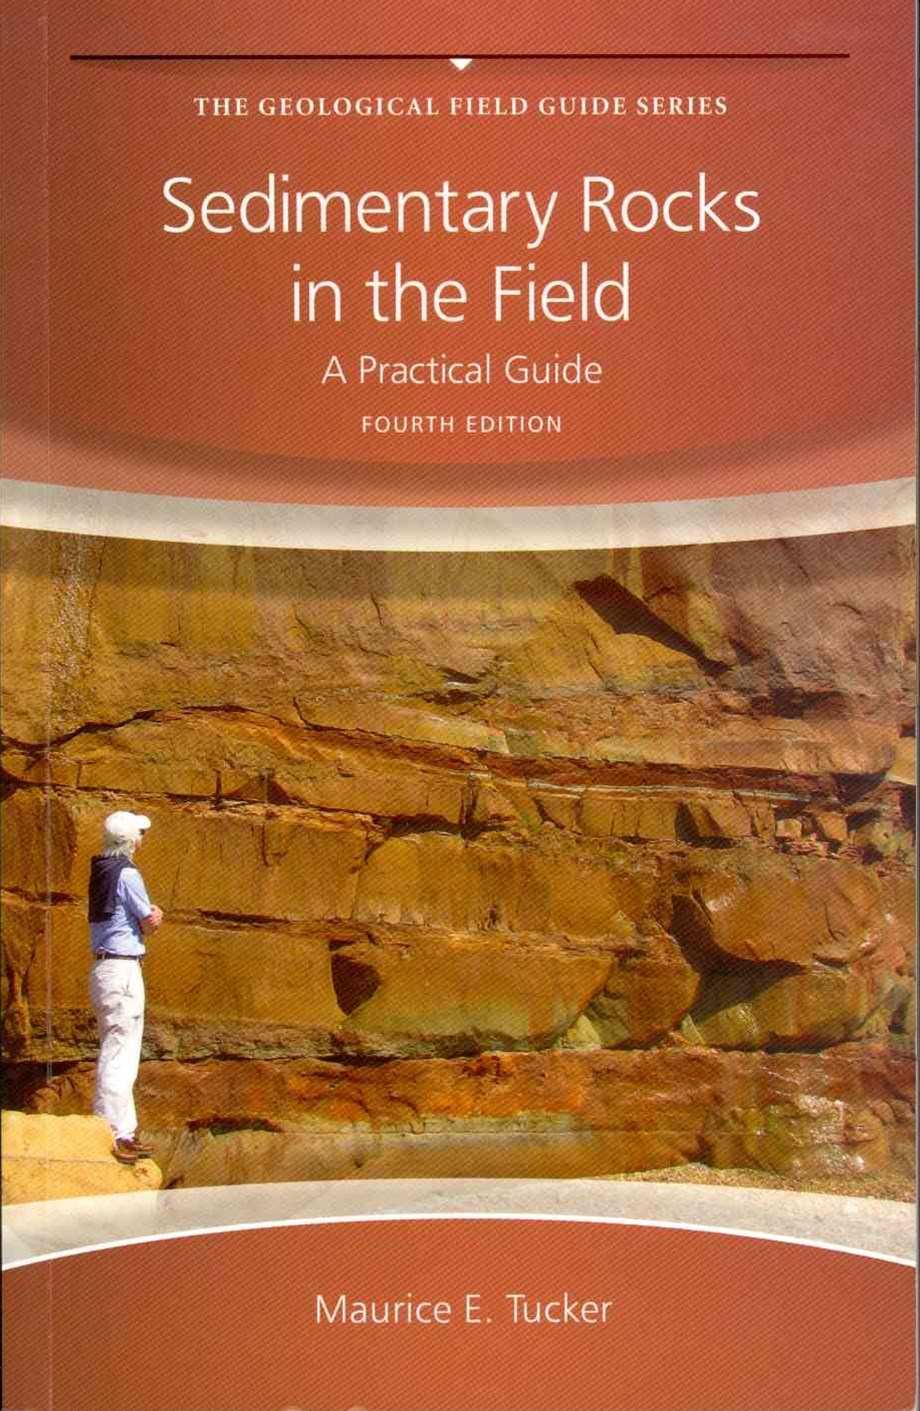 Sedimentary Rocks in the Field - a Practical      Guide 4E